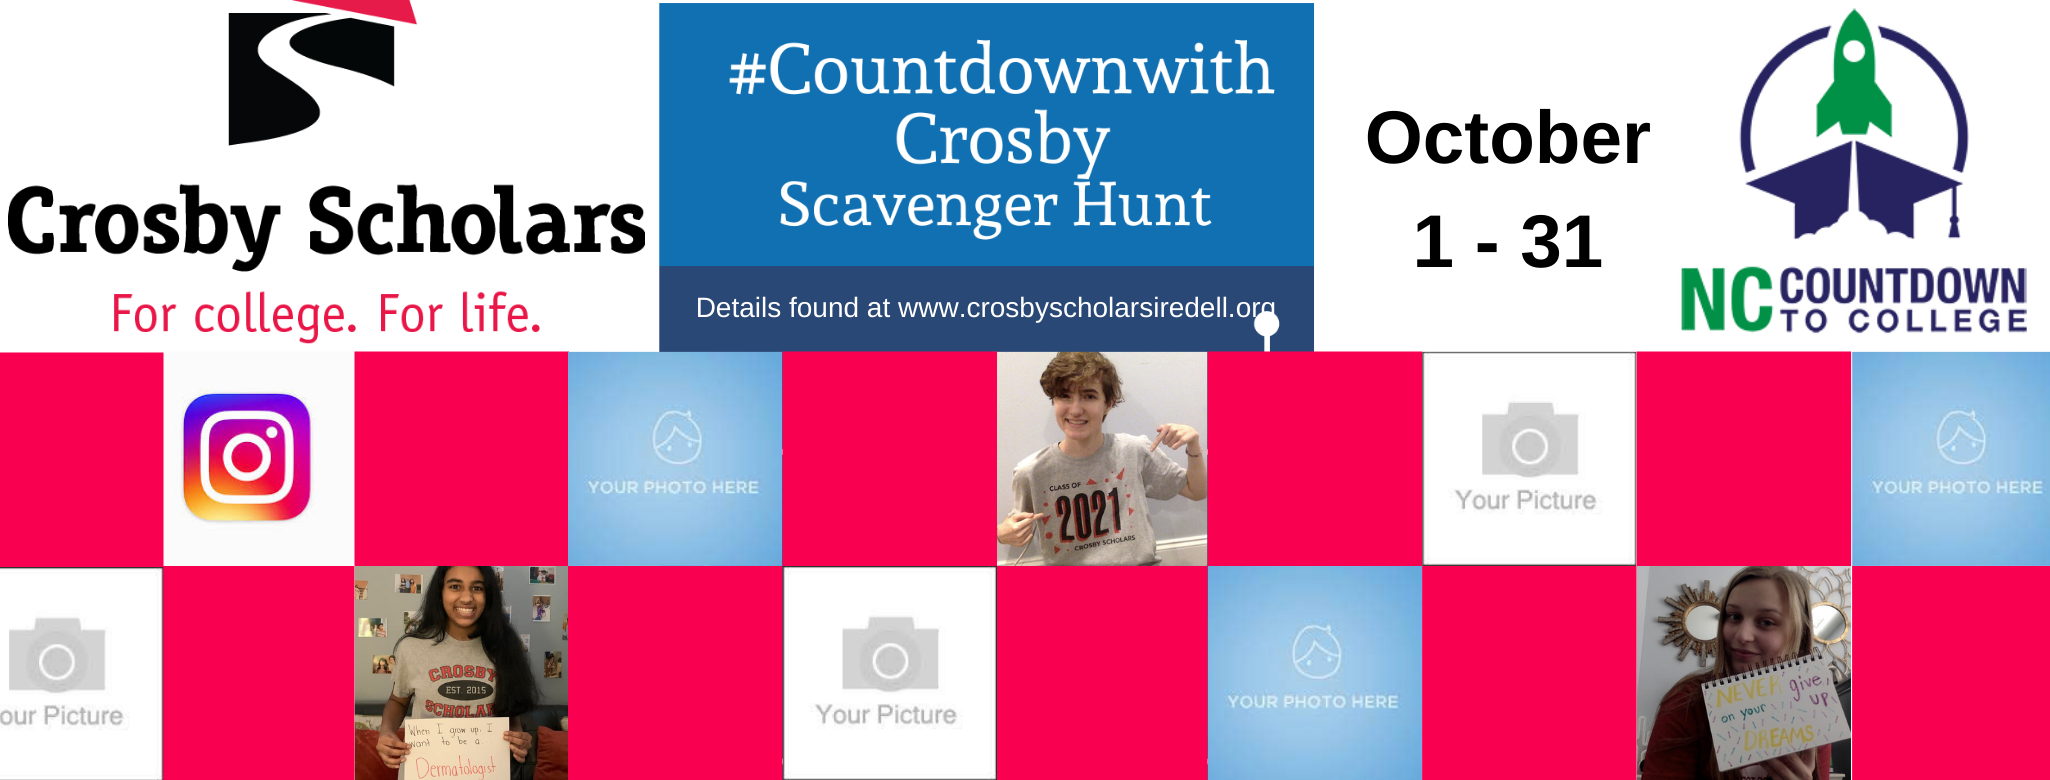 #CountdownWithCrosby Scavenger Hunt